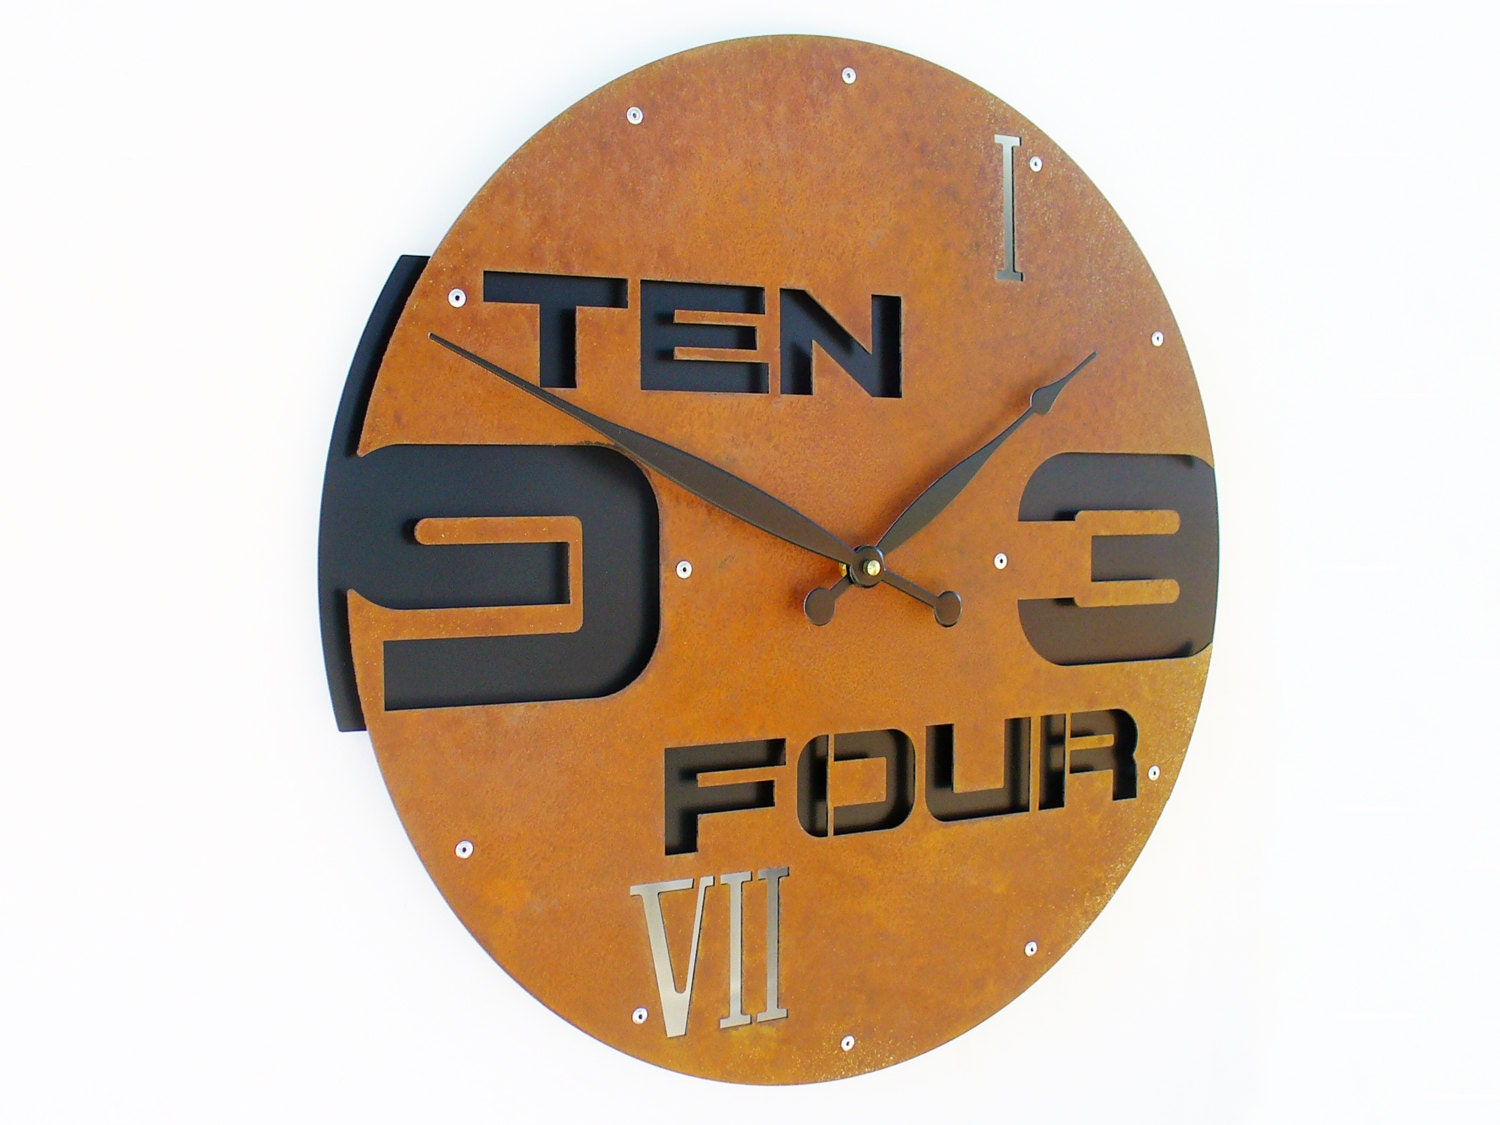 Outnumbered II Large Wall Clock Rustic Wall Clock Unique